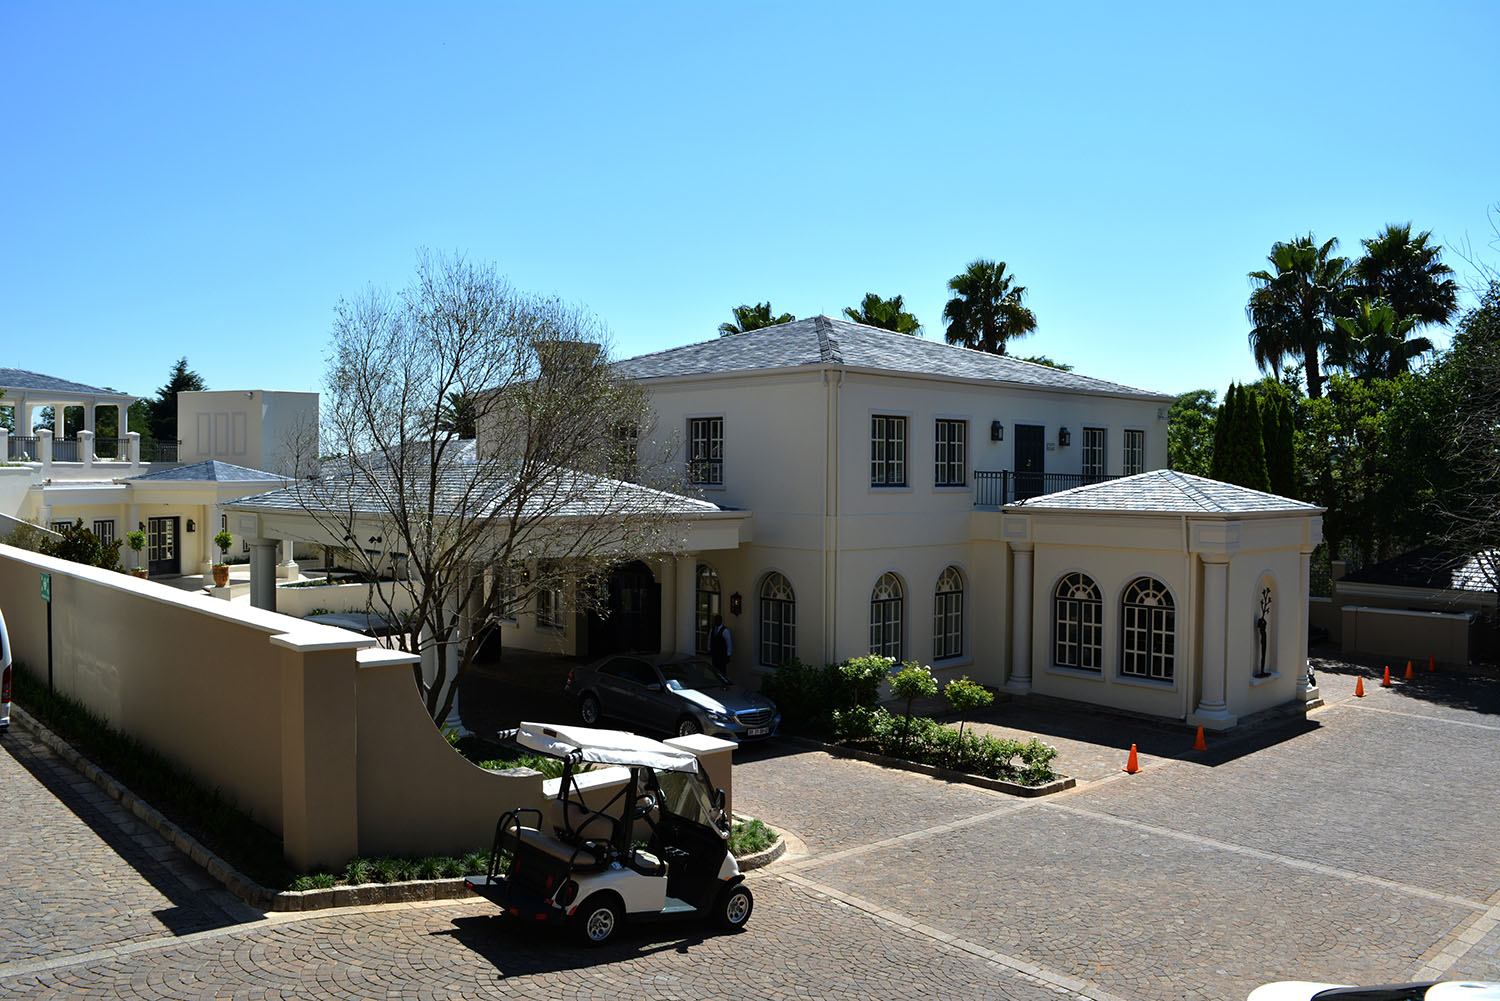 Four Seasons The Westcliff, Johannesburg Review